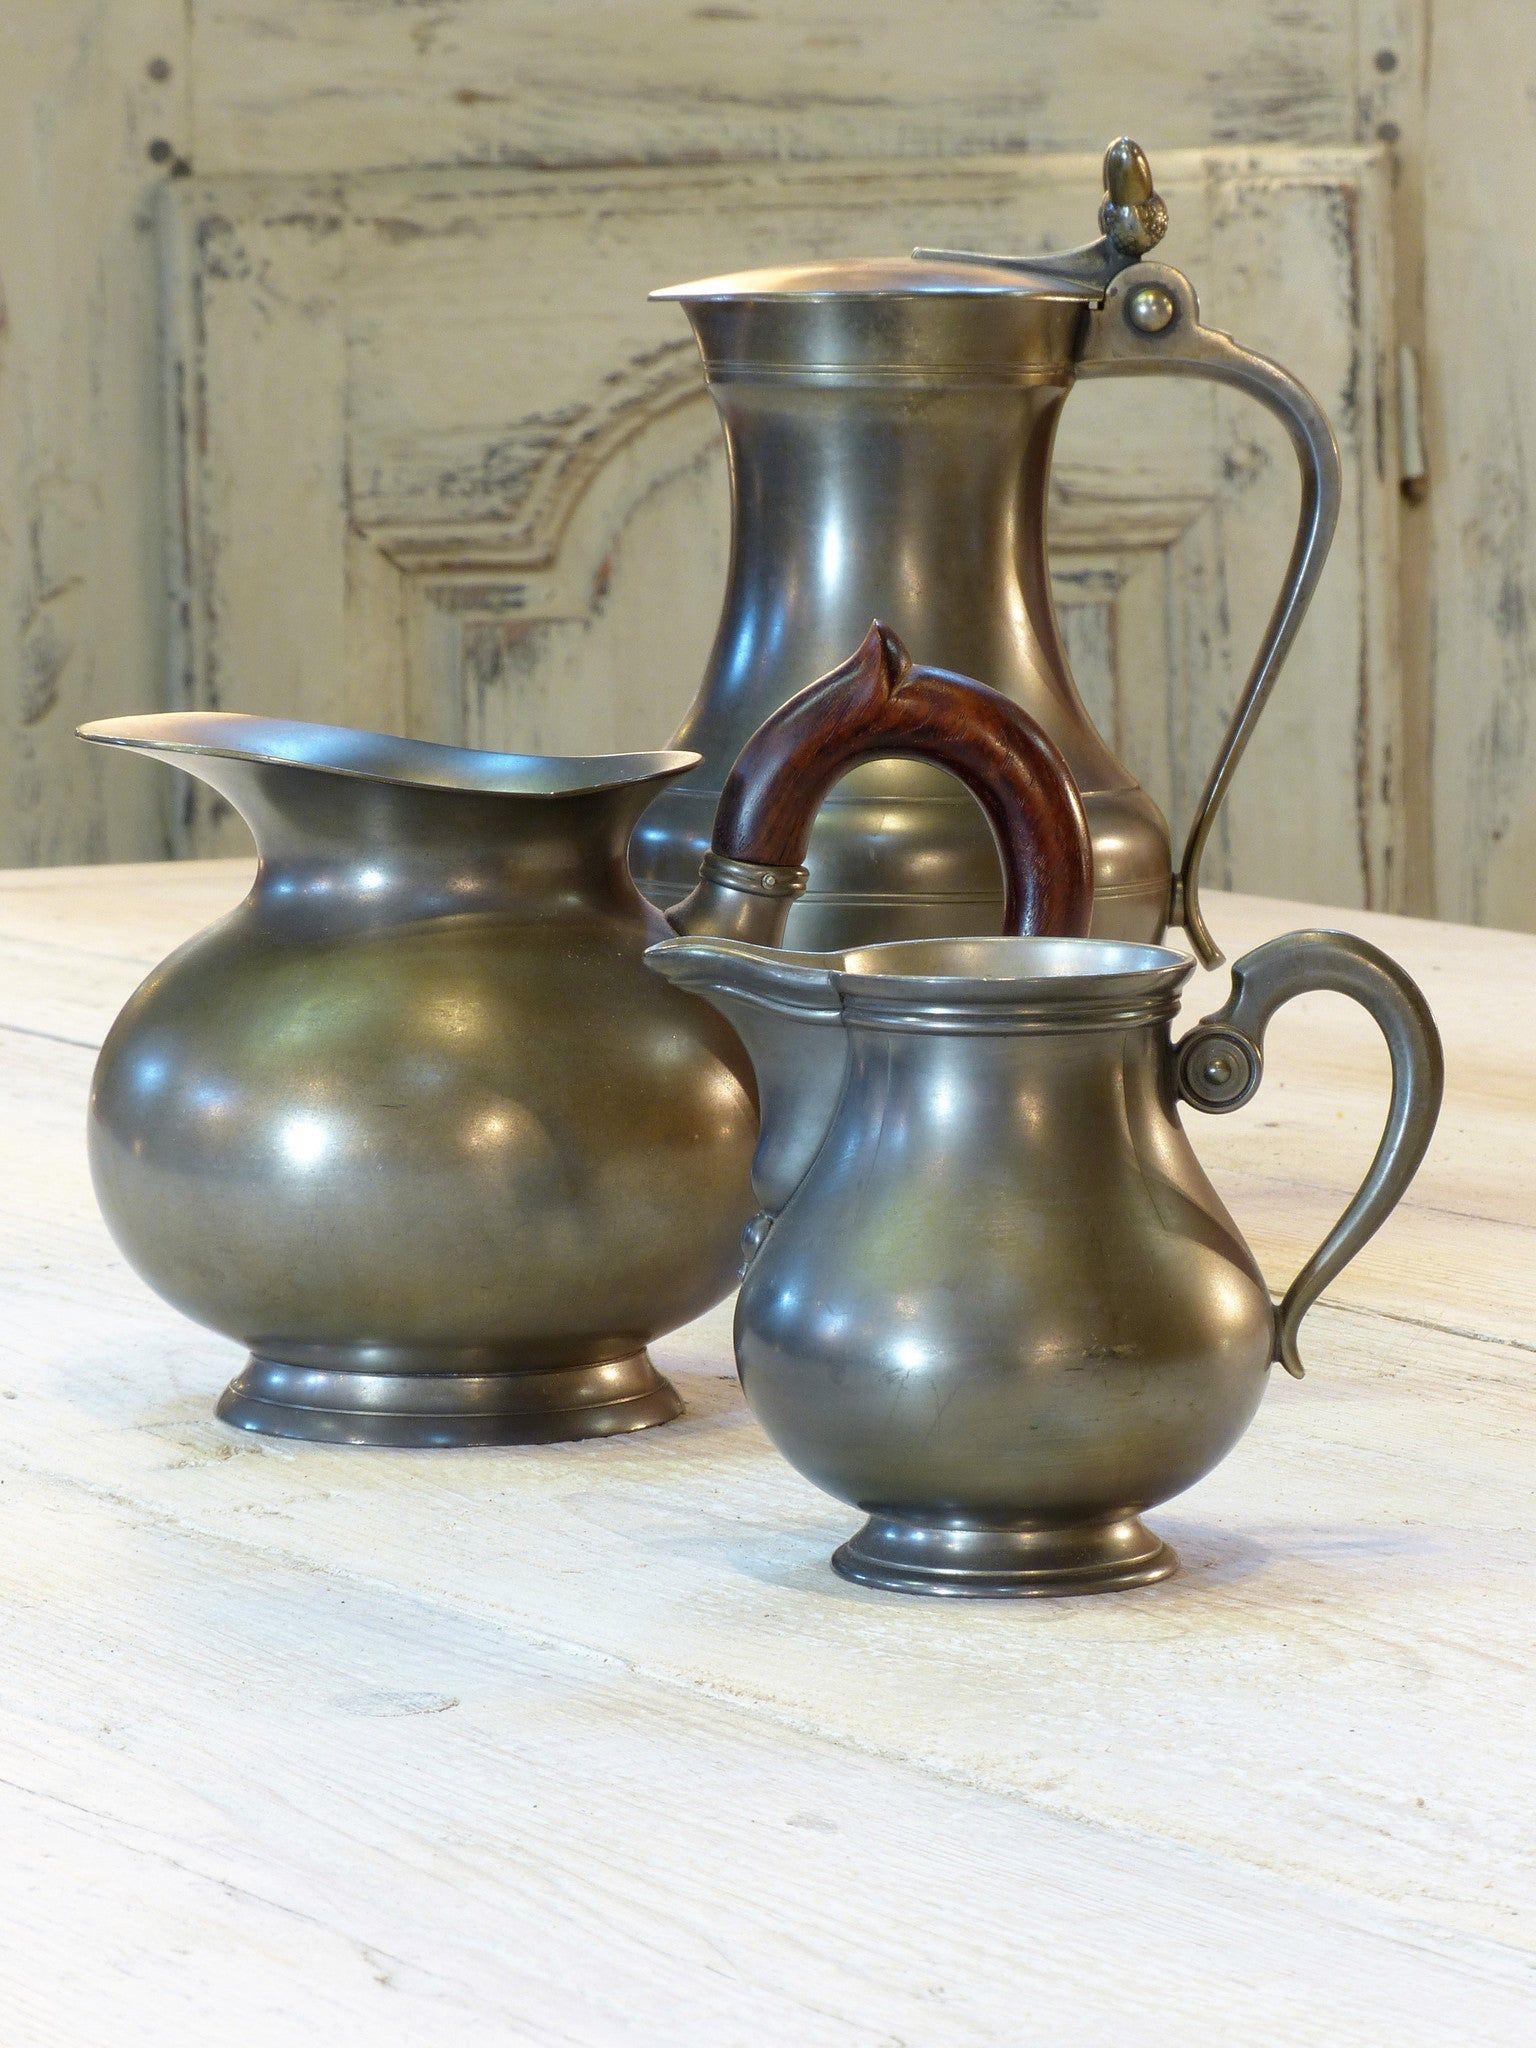 Three French pewter jugs - 1950's